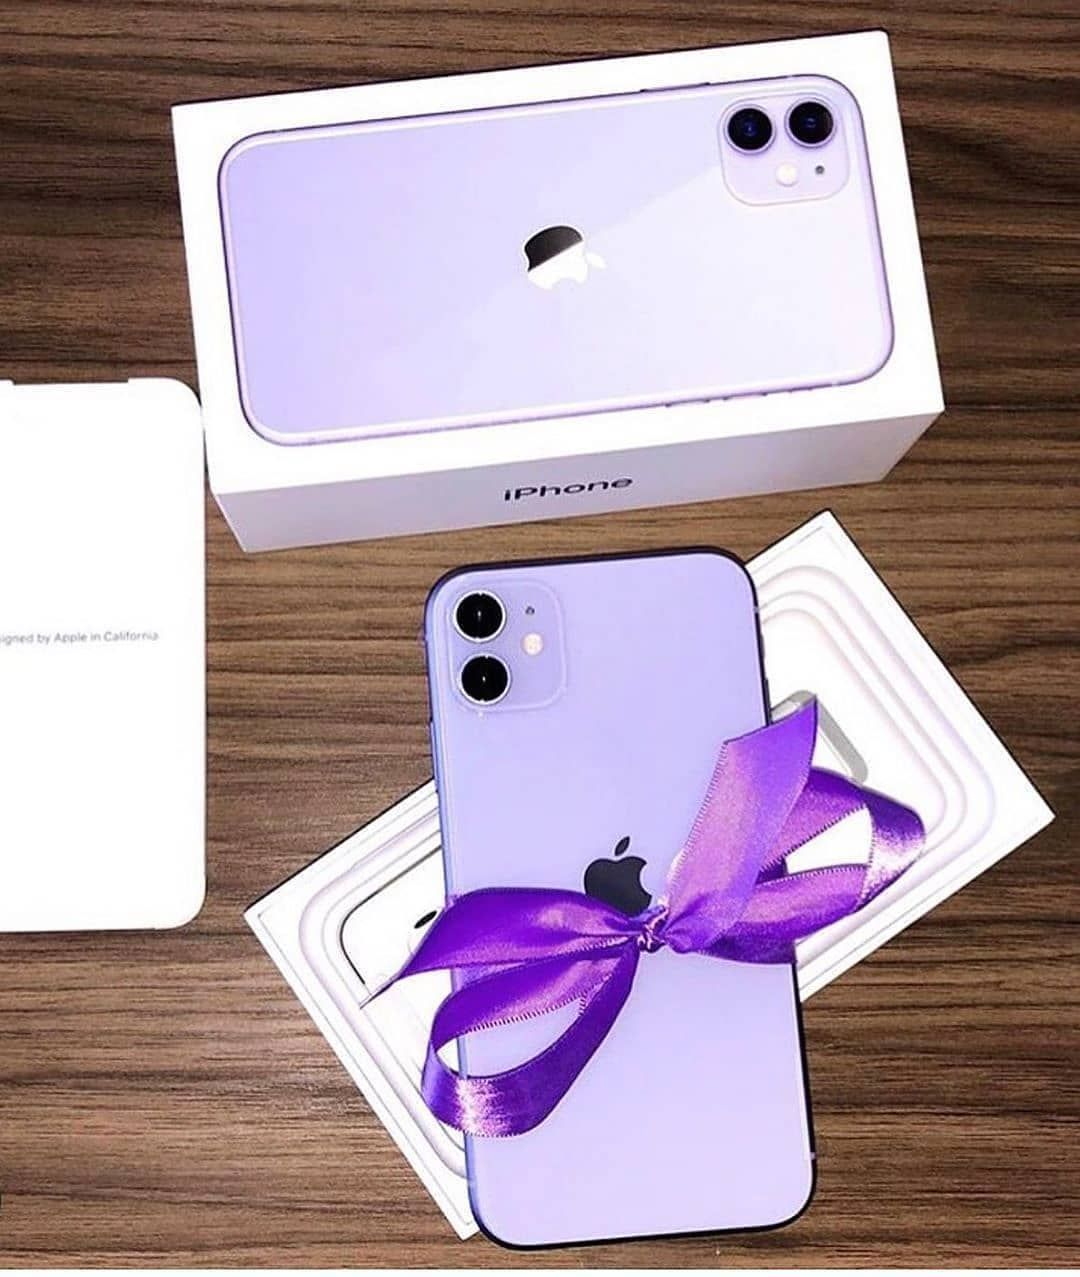 Cool Electronics Gadgets In 2020 Free Iphone Iphone Apple Iphone Accessories